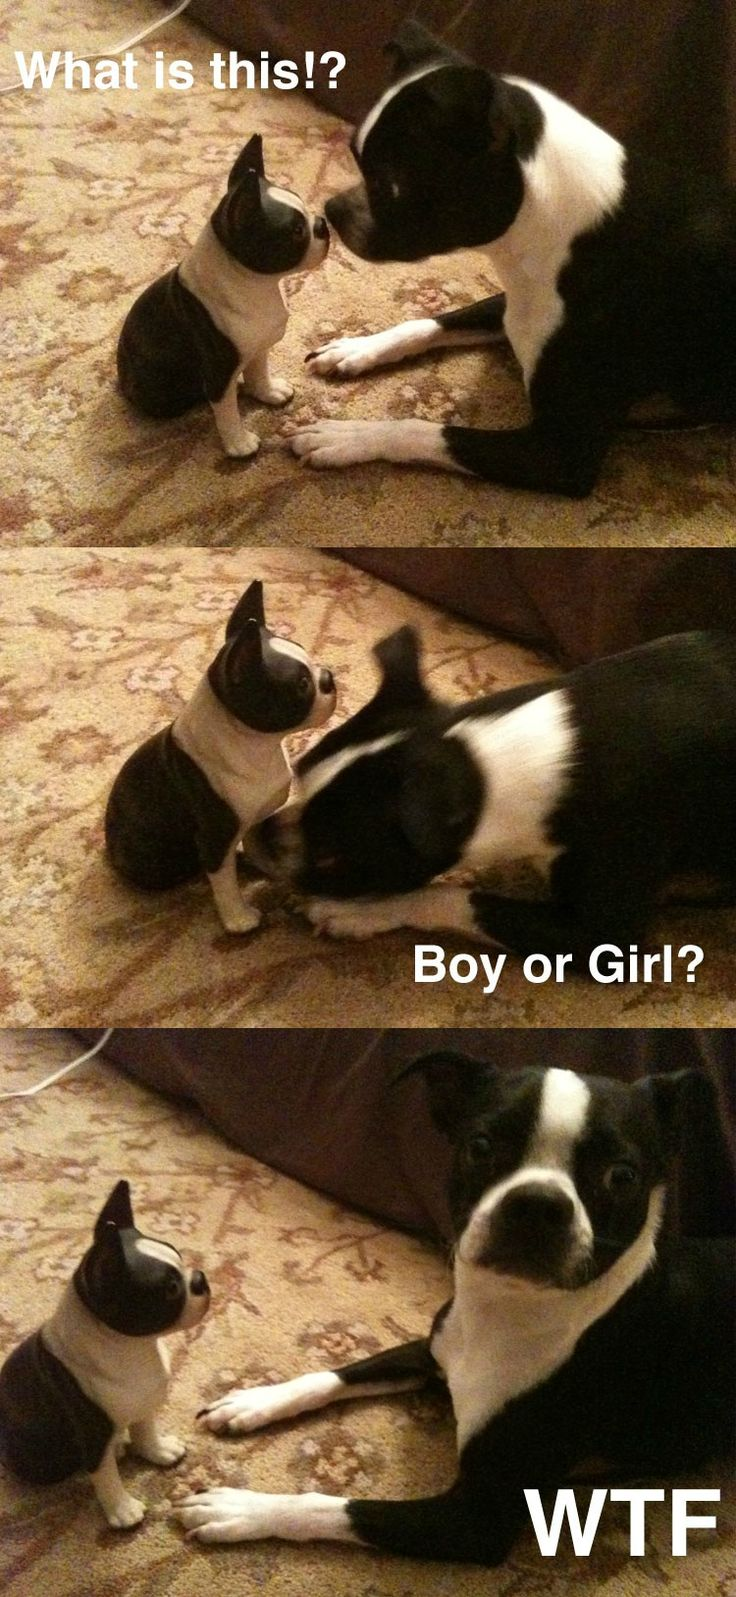 Here is a funny picture sequence with a Boston Terrier dog wondering what is this?! In fact, this is a miniature boston terrier statue!